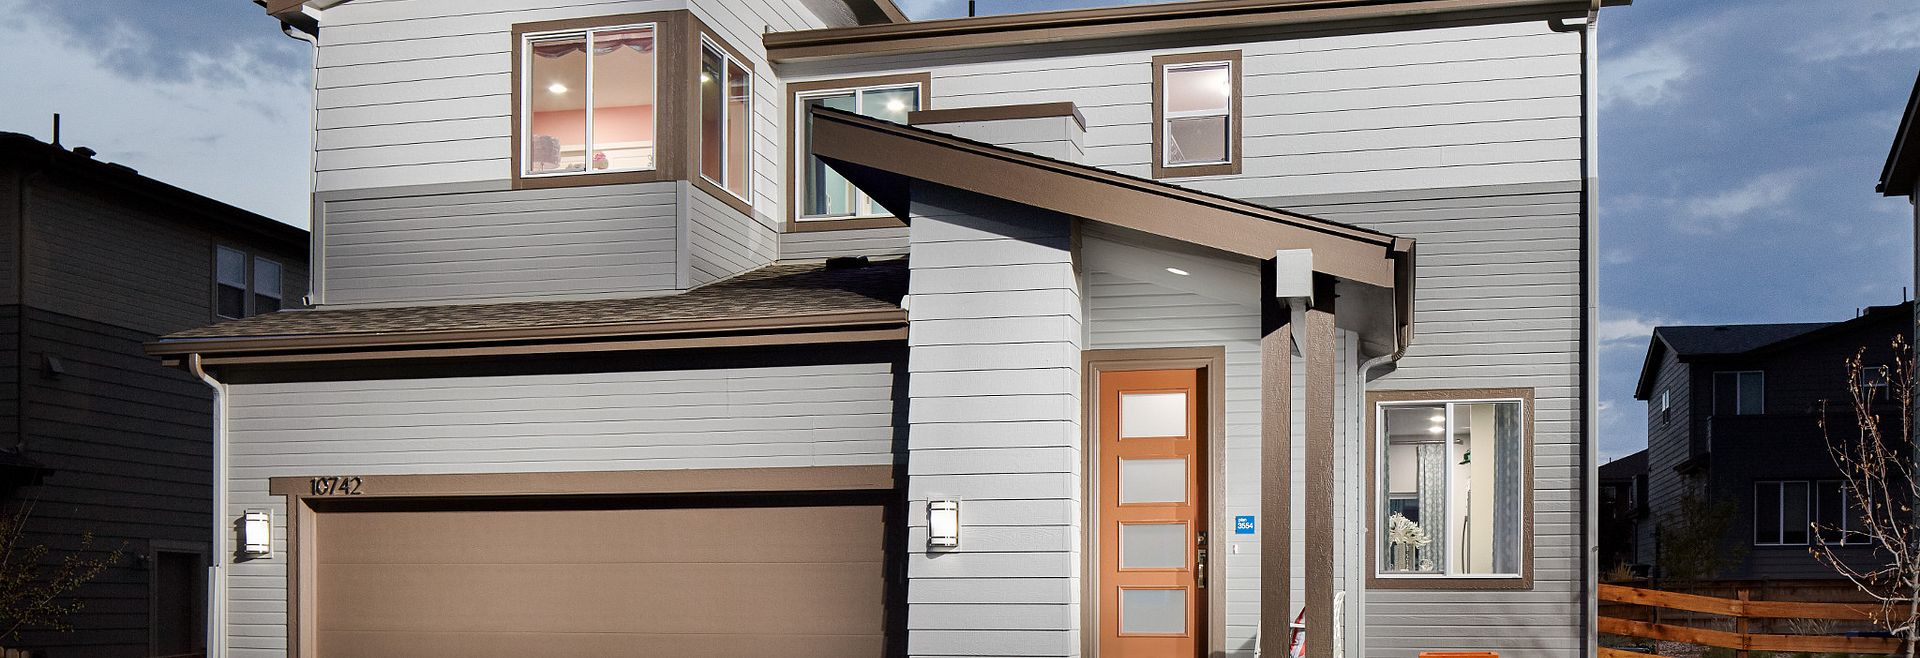 Spaces at Reunion by Shea Homes in Commerce City, CO